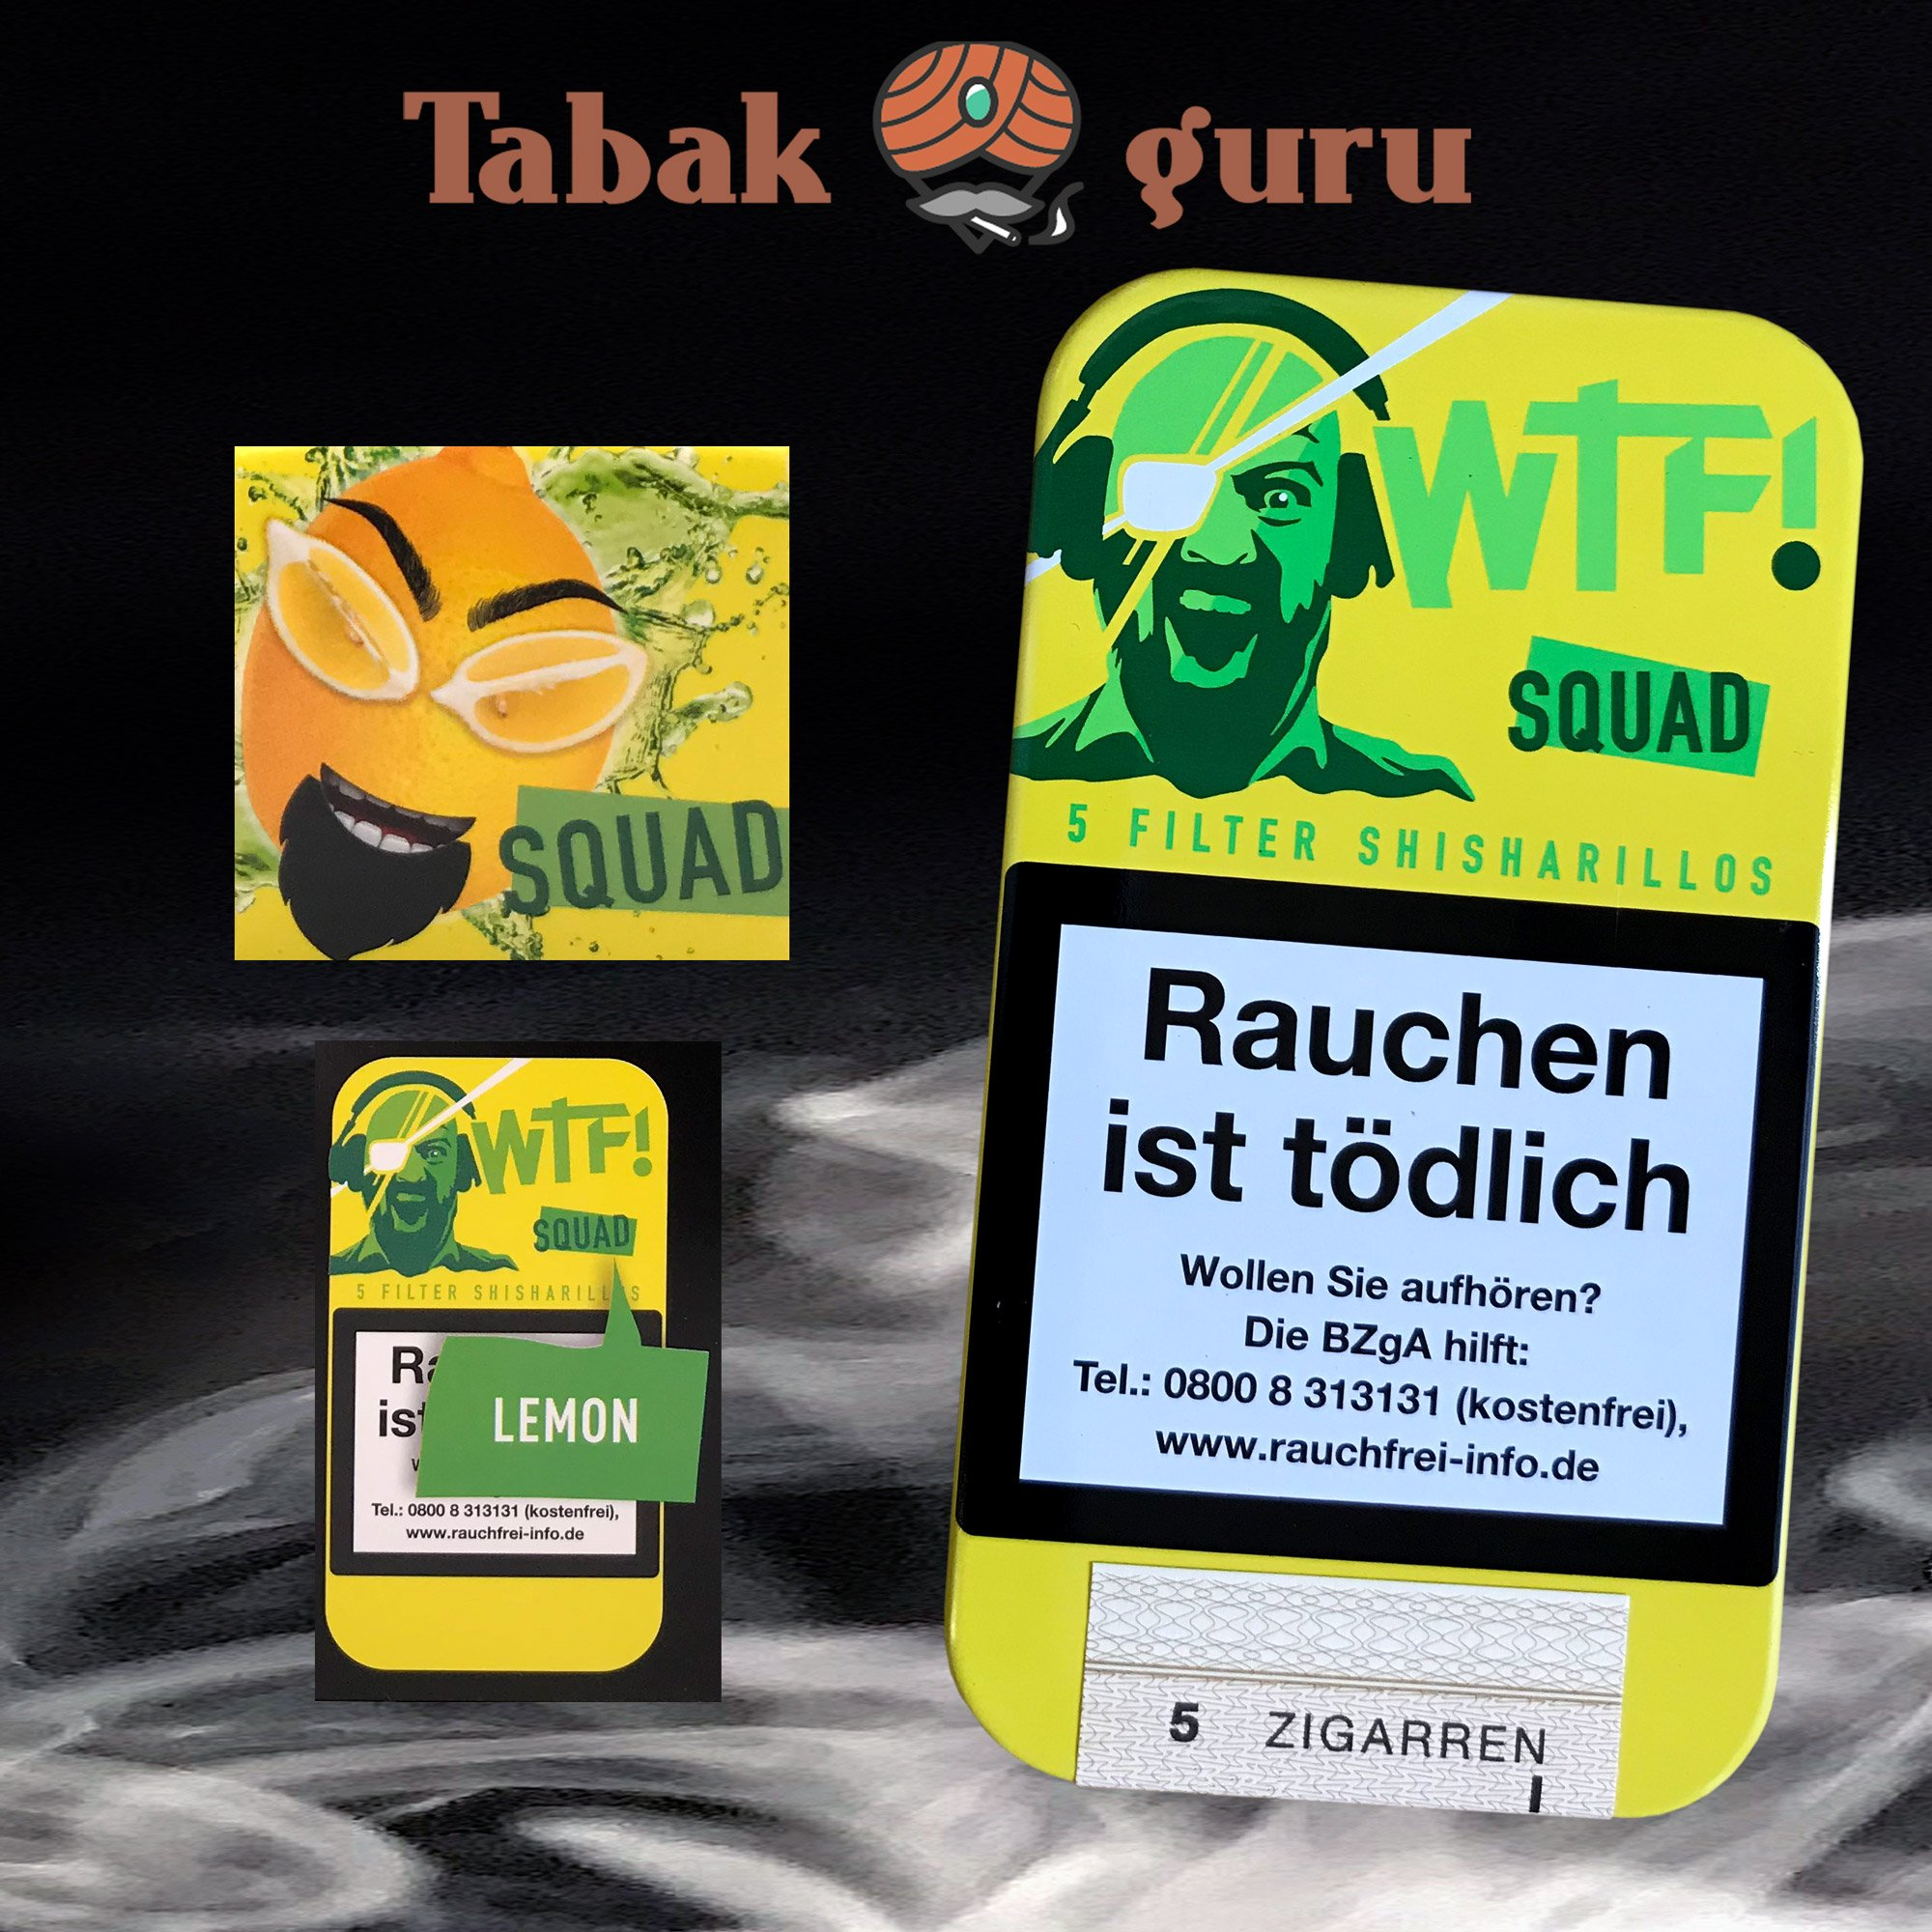 5 Filter WTF! Shisharillos Geschmacksrichtung SQUAD (Zitrone)